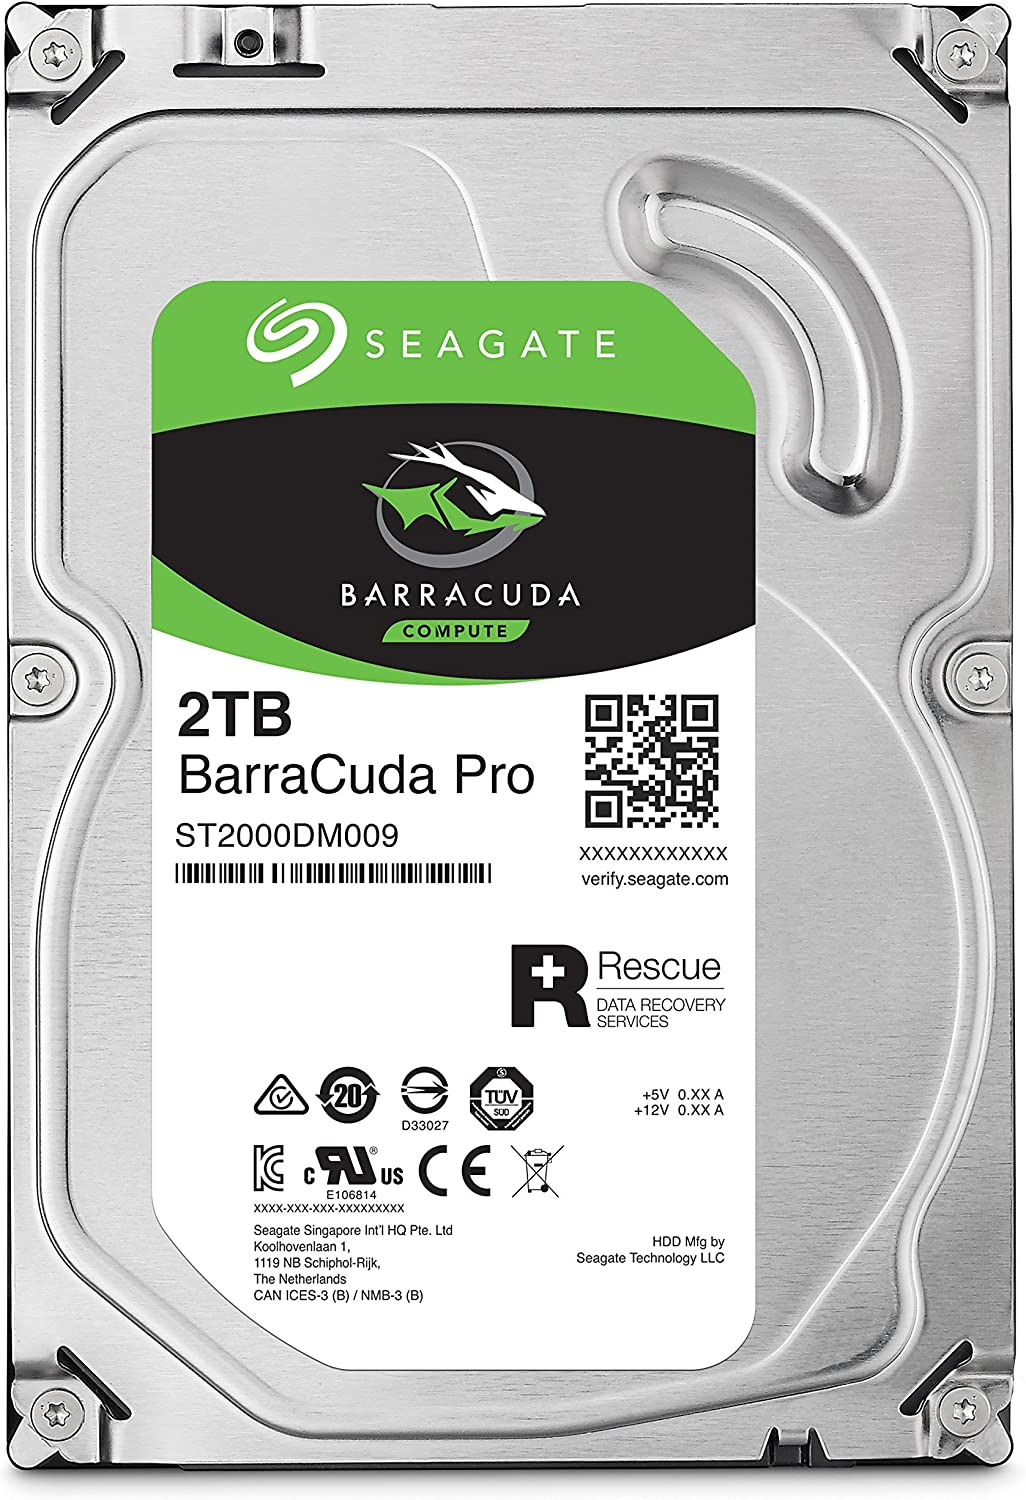 Seagate Barracuda Pro SATA HDD 2TB 7200RPM 6Gb/s 256MB Cache 3.5-Inch Internal Hard Drive for PC/Desktop Computers System